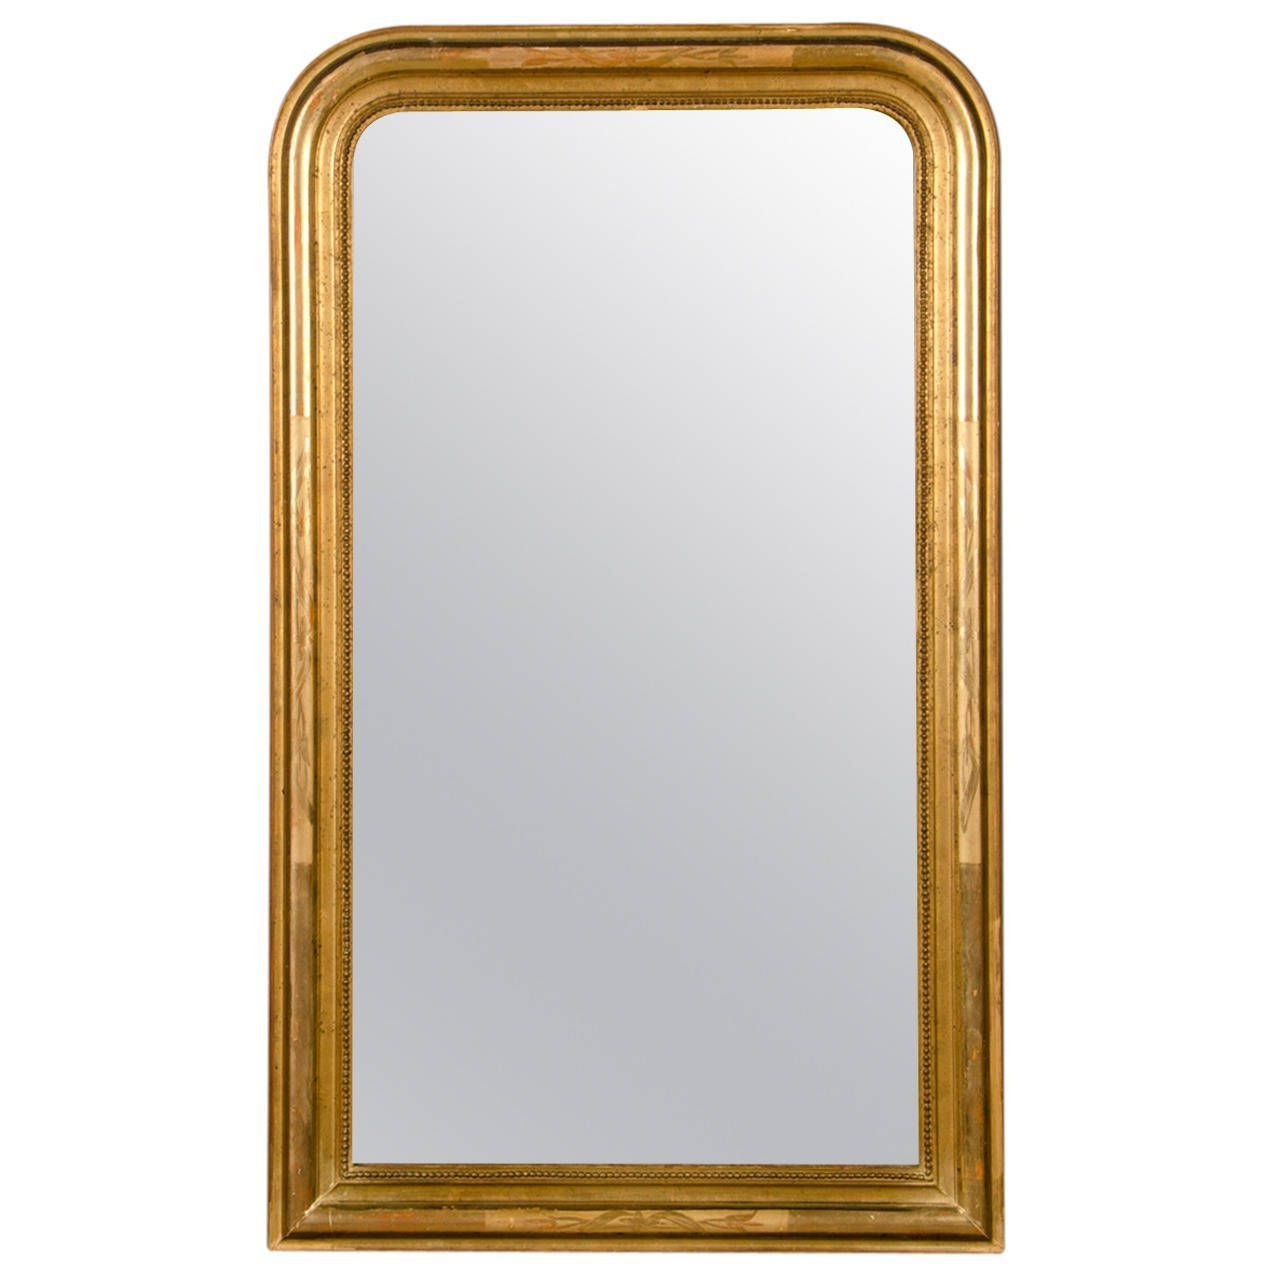 Widely Used Stupendous Tricks: White Wall Mirror Chairs Large Wall Inside Large Wall Mirrors Ikea (View 20 of 20)